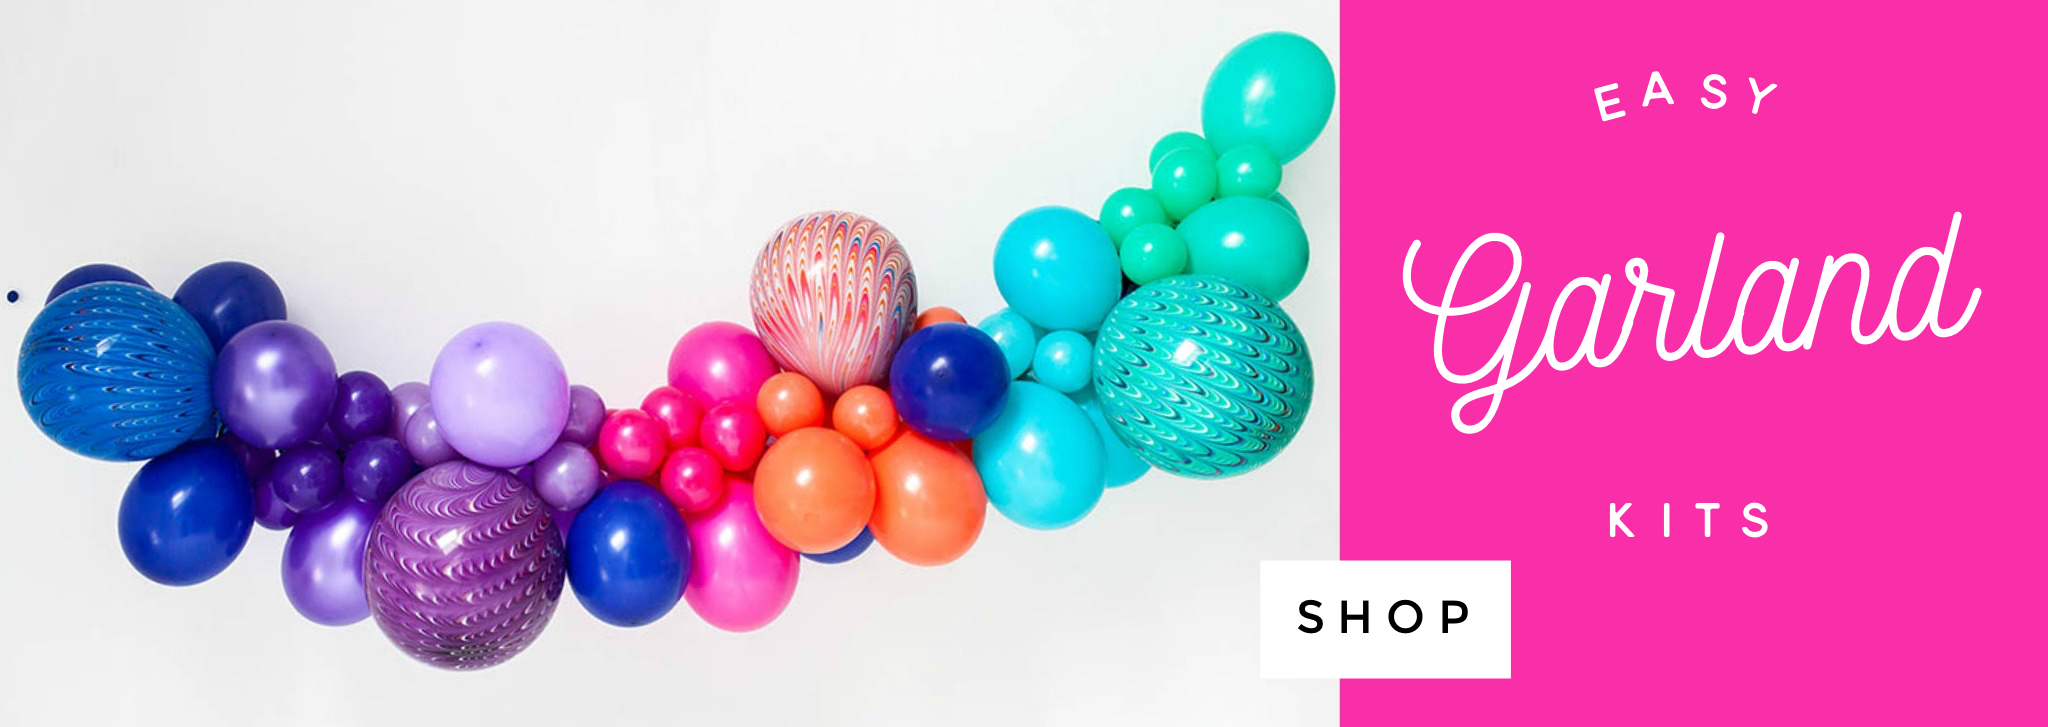 Stylish Party Supplies And Decorations